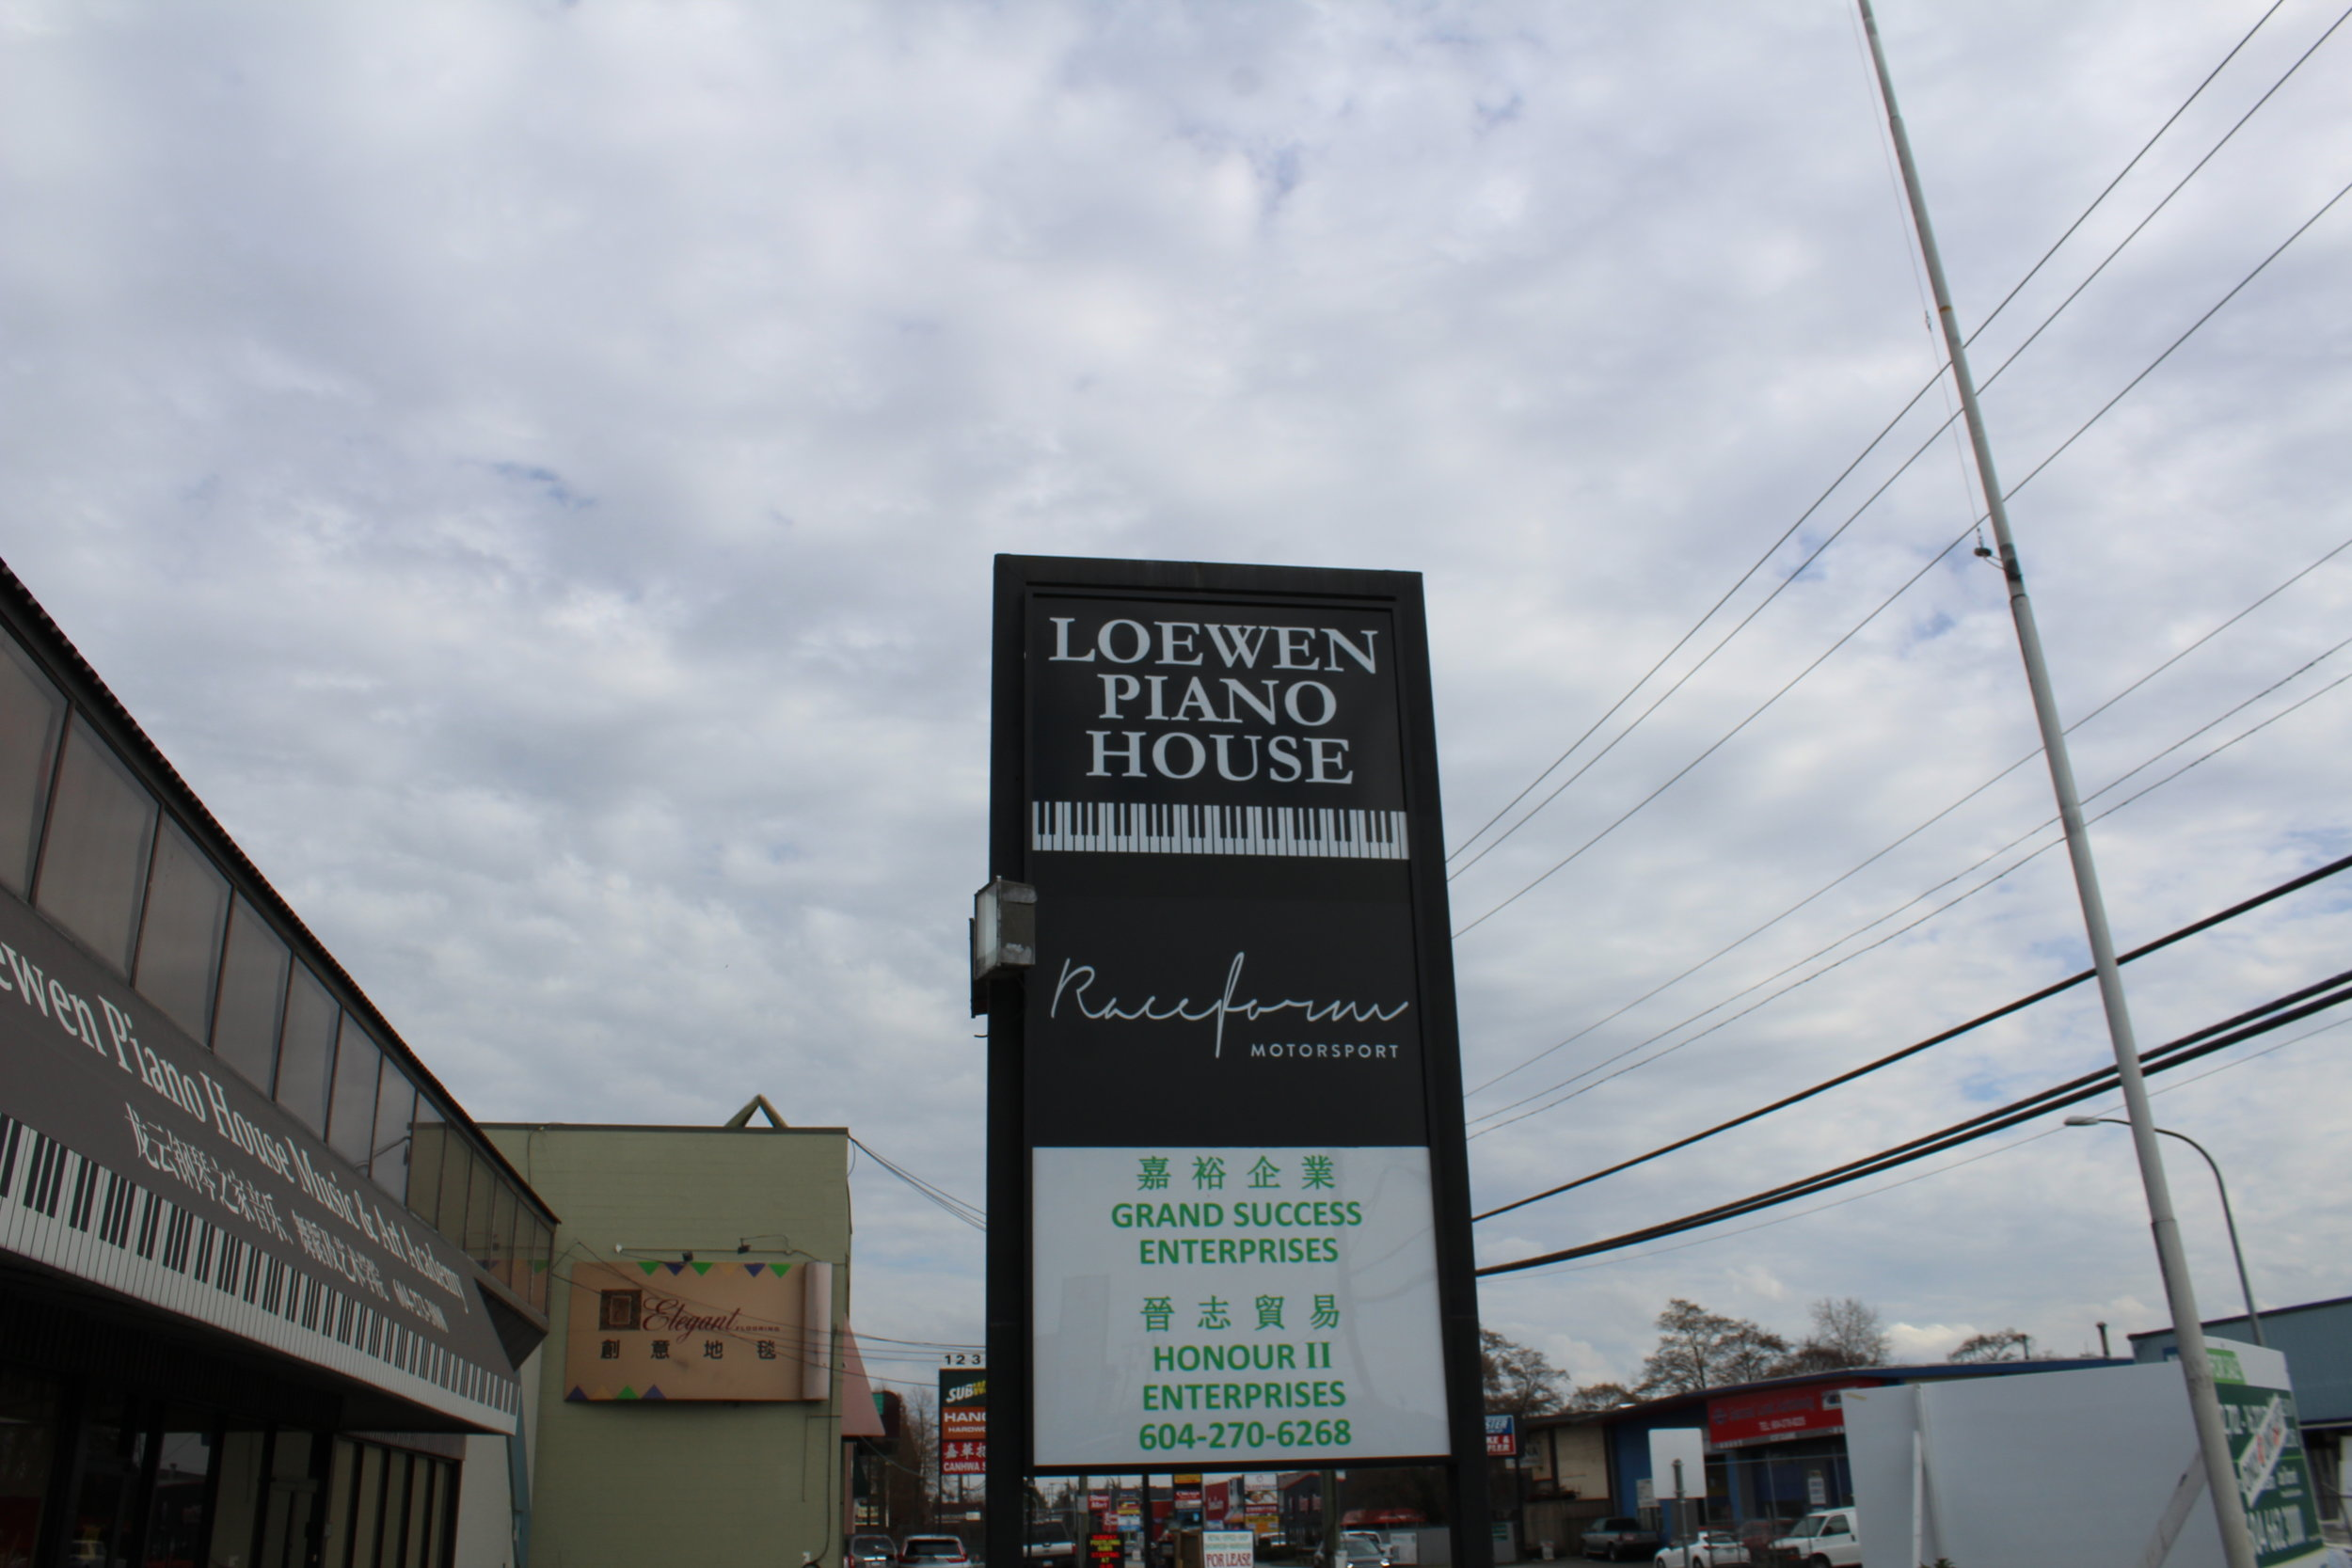 Gallery — Loewen Piano House - Greater Vancouver's Premier Piano Center